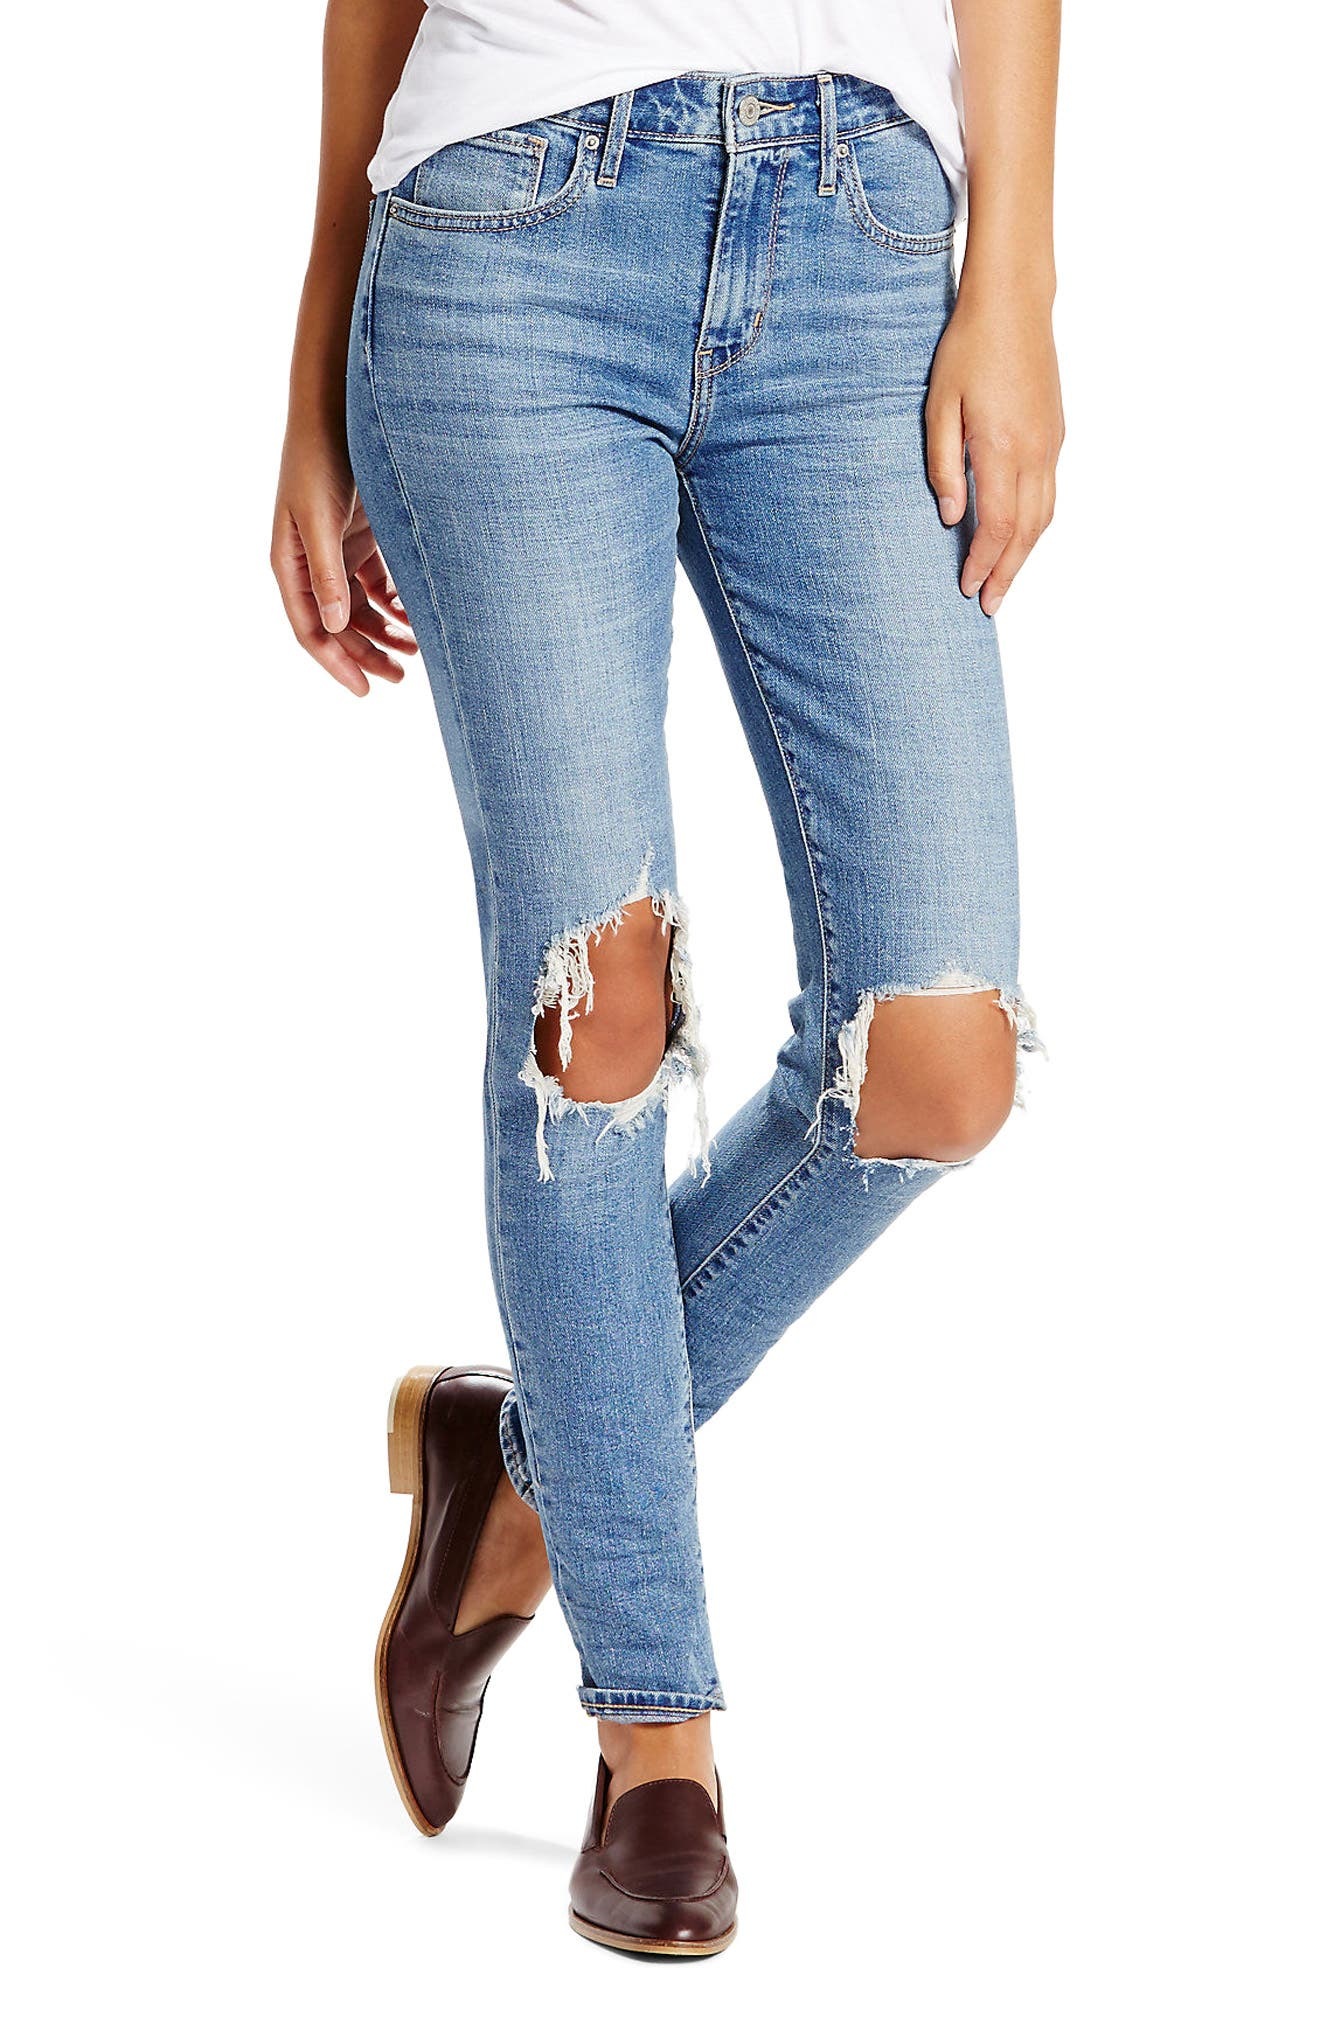 721 Ripped High Waist Skinny Jeans,                             Main thumbnail 1, color,                             Rugged Indigo